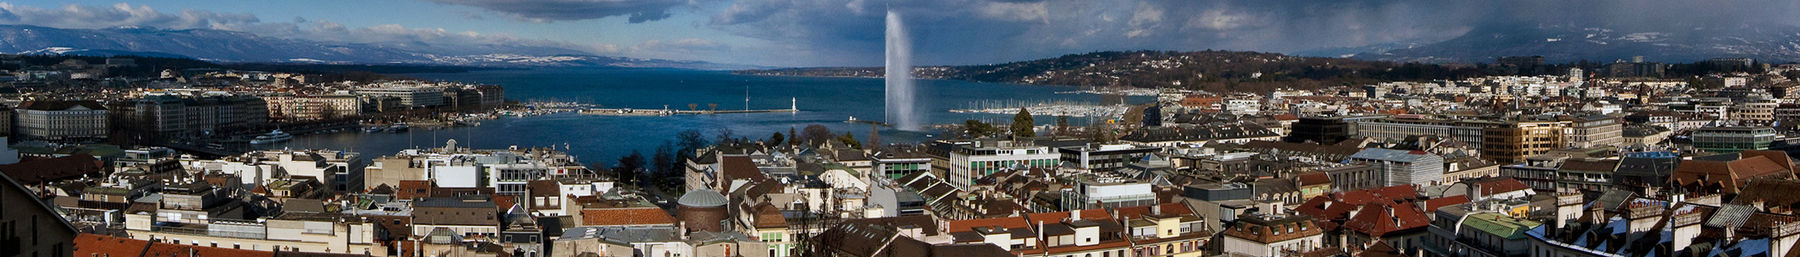 Geneva panorama with the Jet d'eau